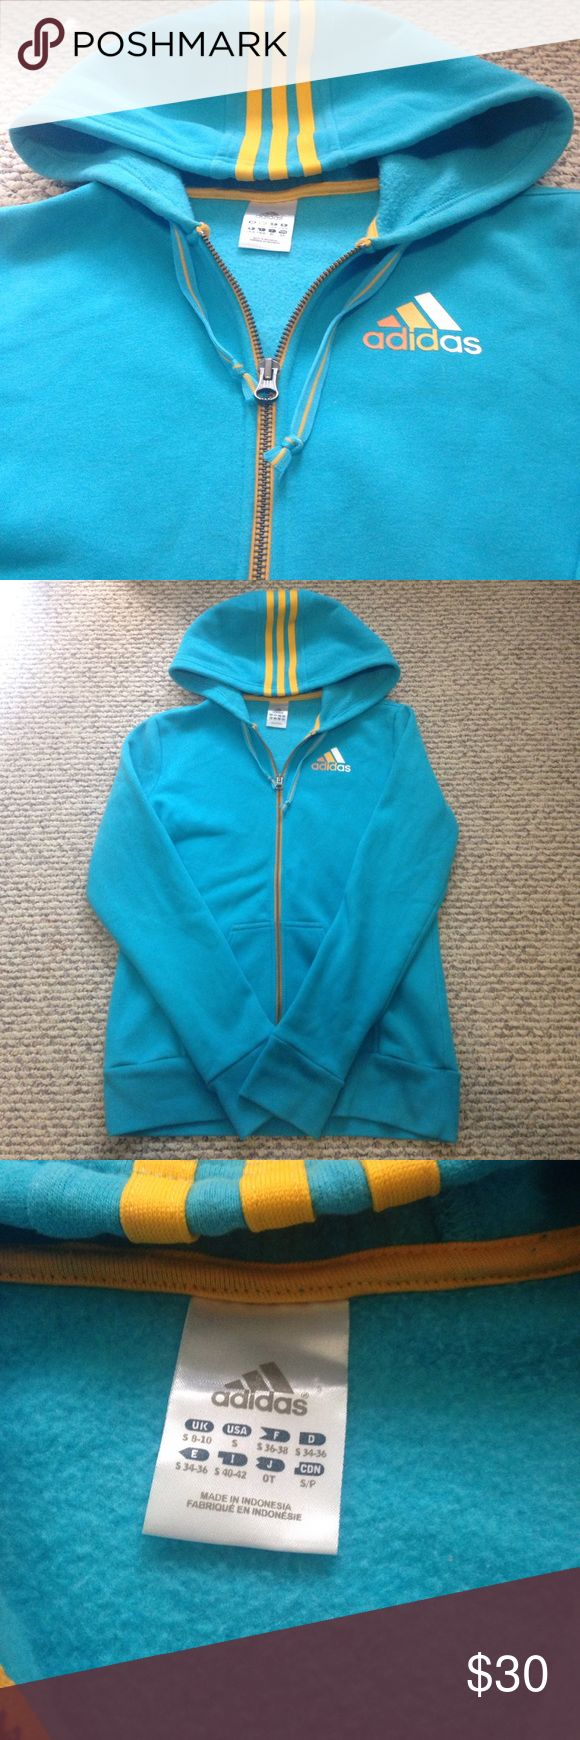 Adidas zip up Rare real adidas zip up. Orange, yellow, and white logo with yellow stripes on the hood. Has holes for your thumbs and is in excellent condition! adidas Tops Sweatshirts & Hoodies